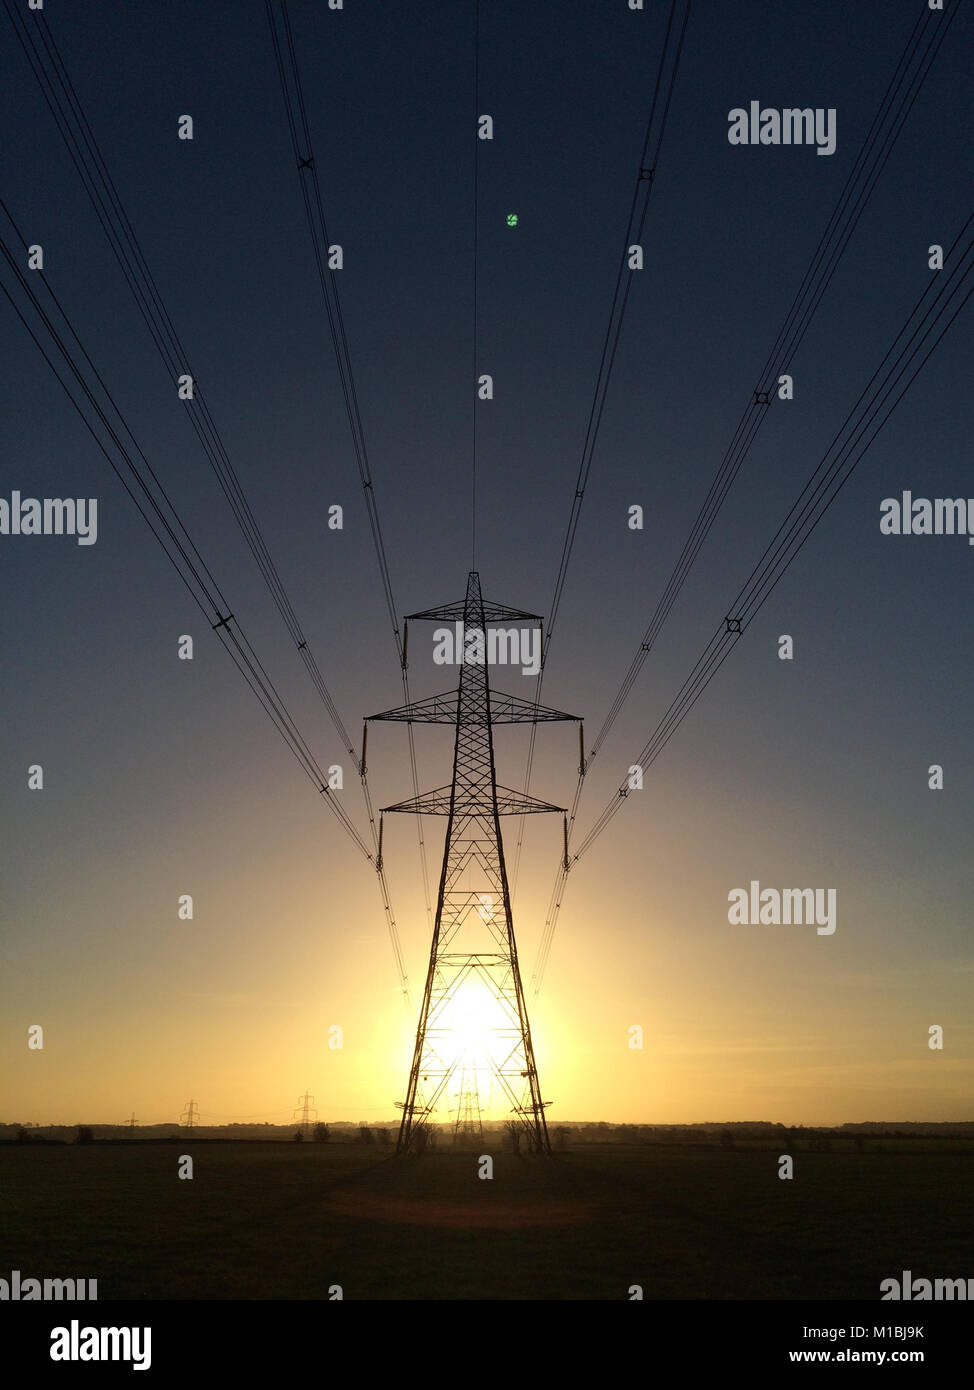 Electricity pylon at sunrise with sun bursting though showing energy and light. - Stock Image